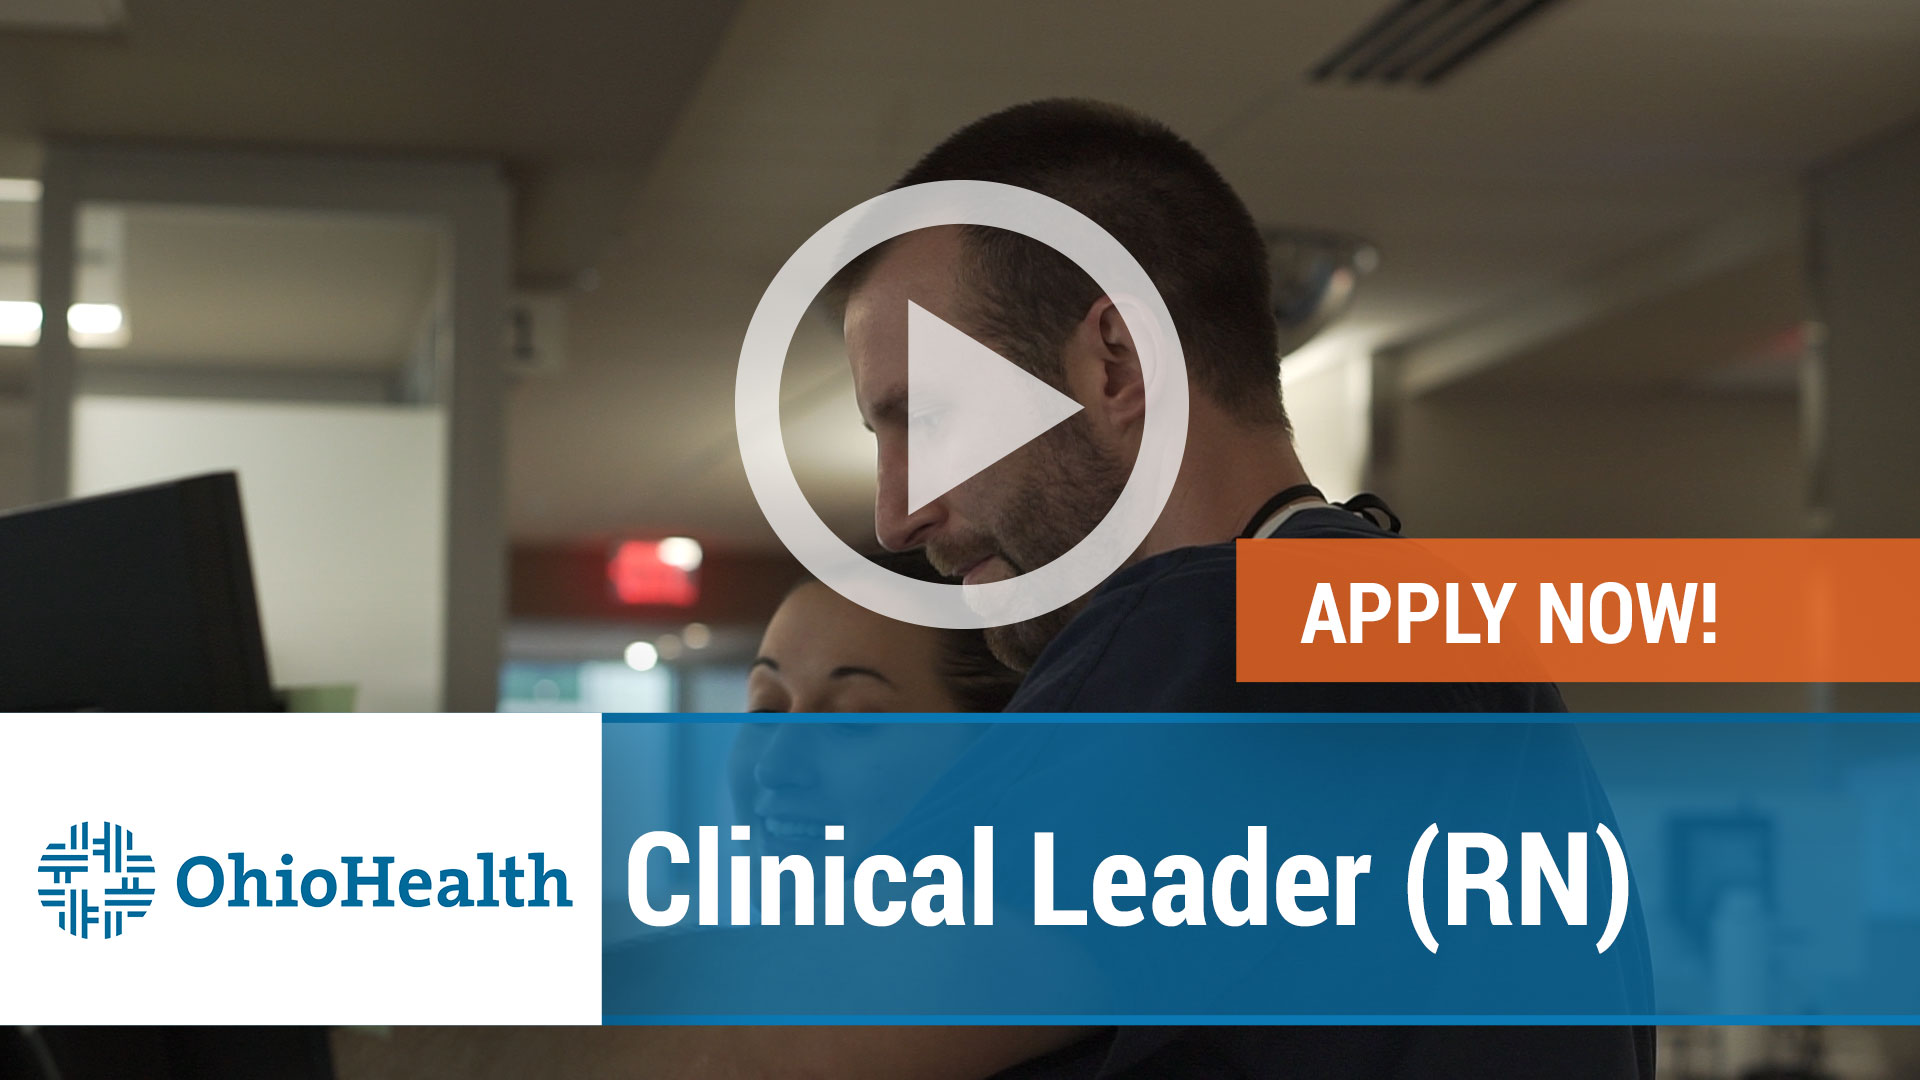 Watch our careers video for available job opening Clinical Leader - RN in Mansfield, Ohio